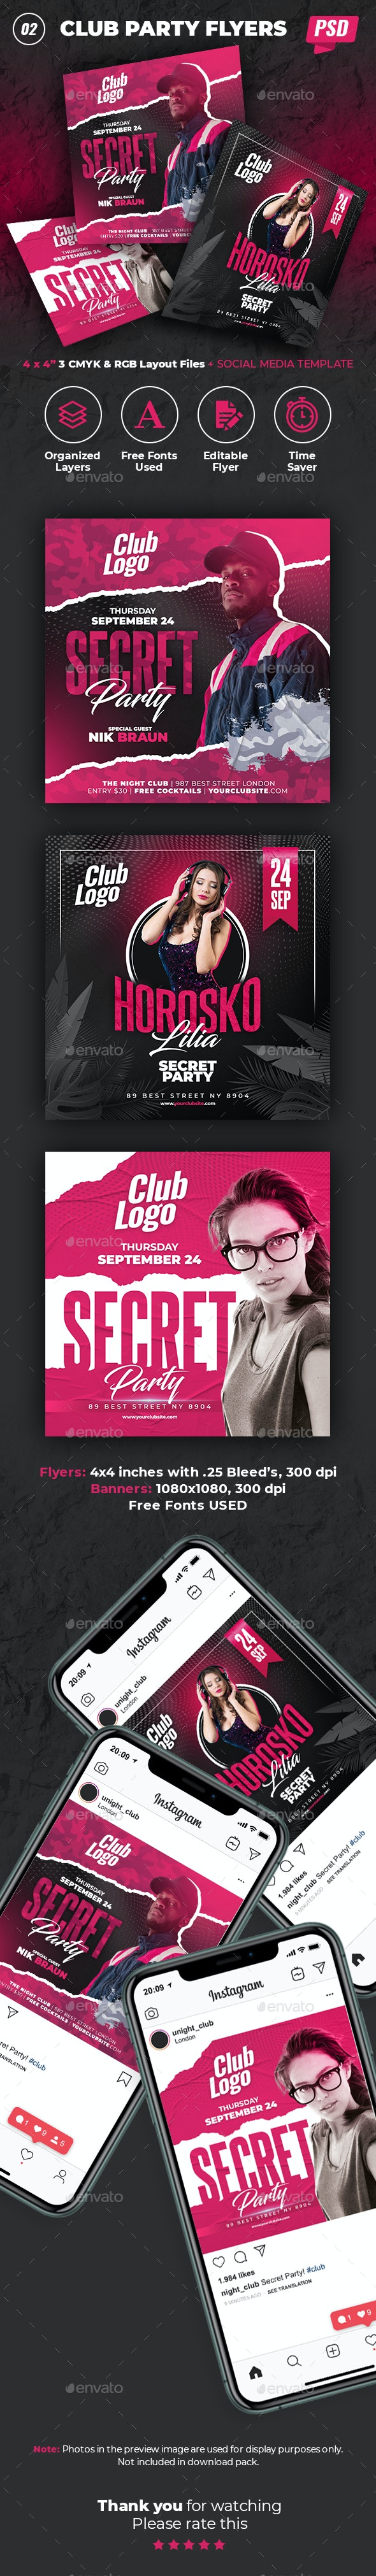 Club Party Flyers and Banners